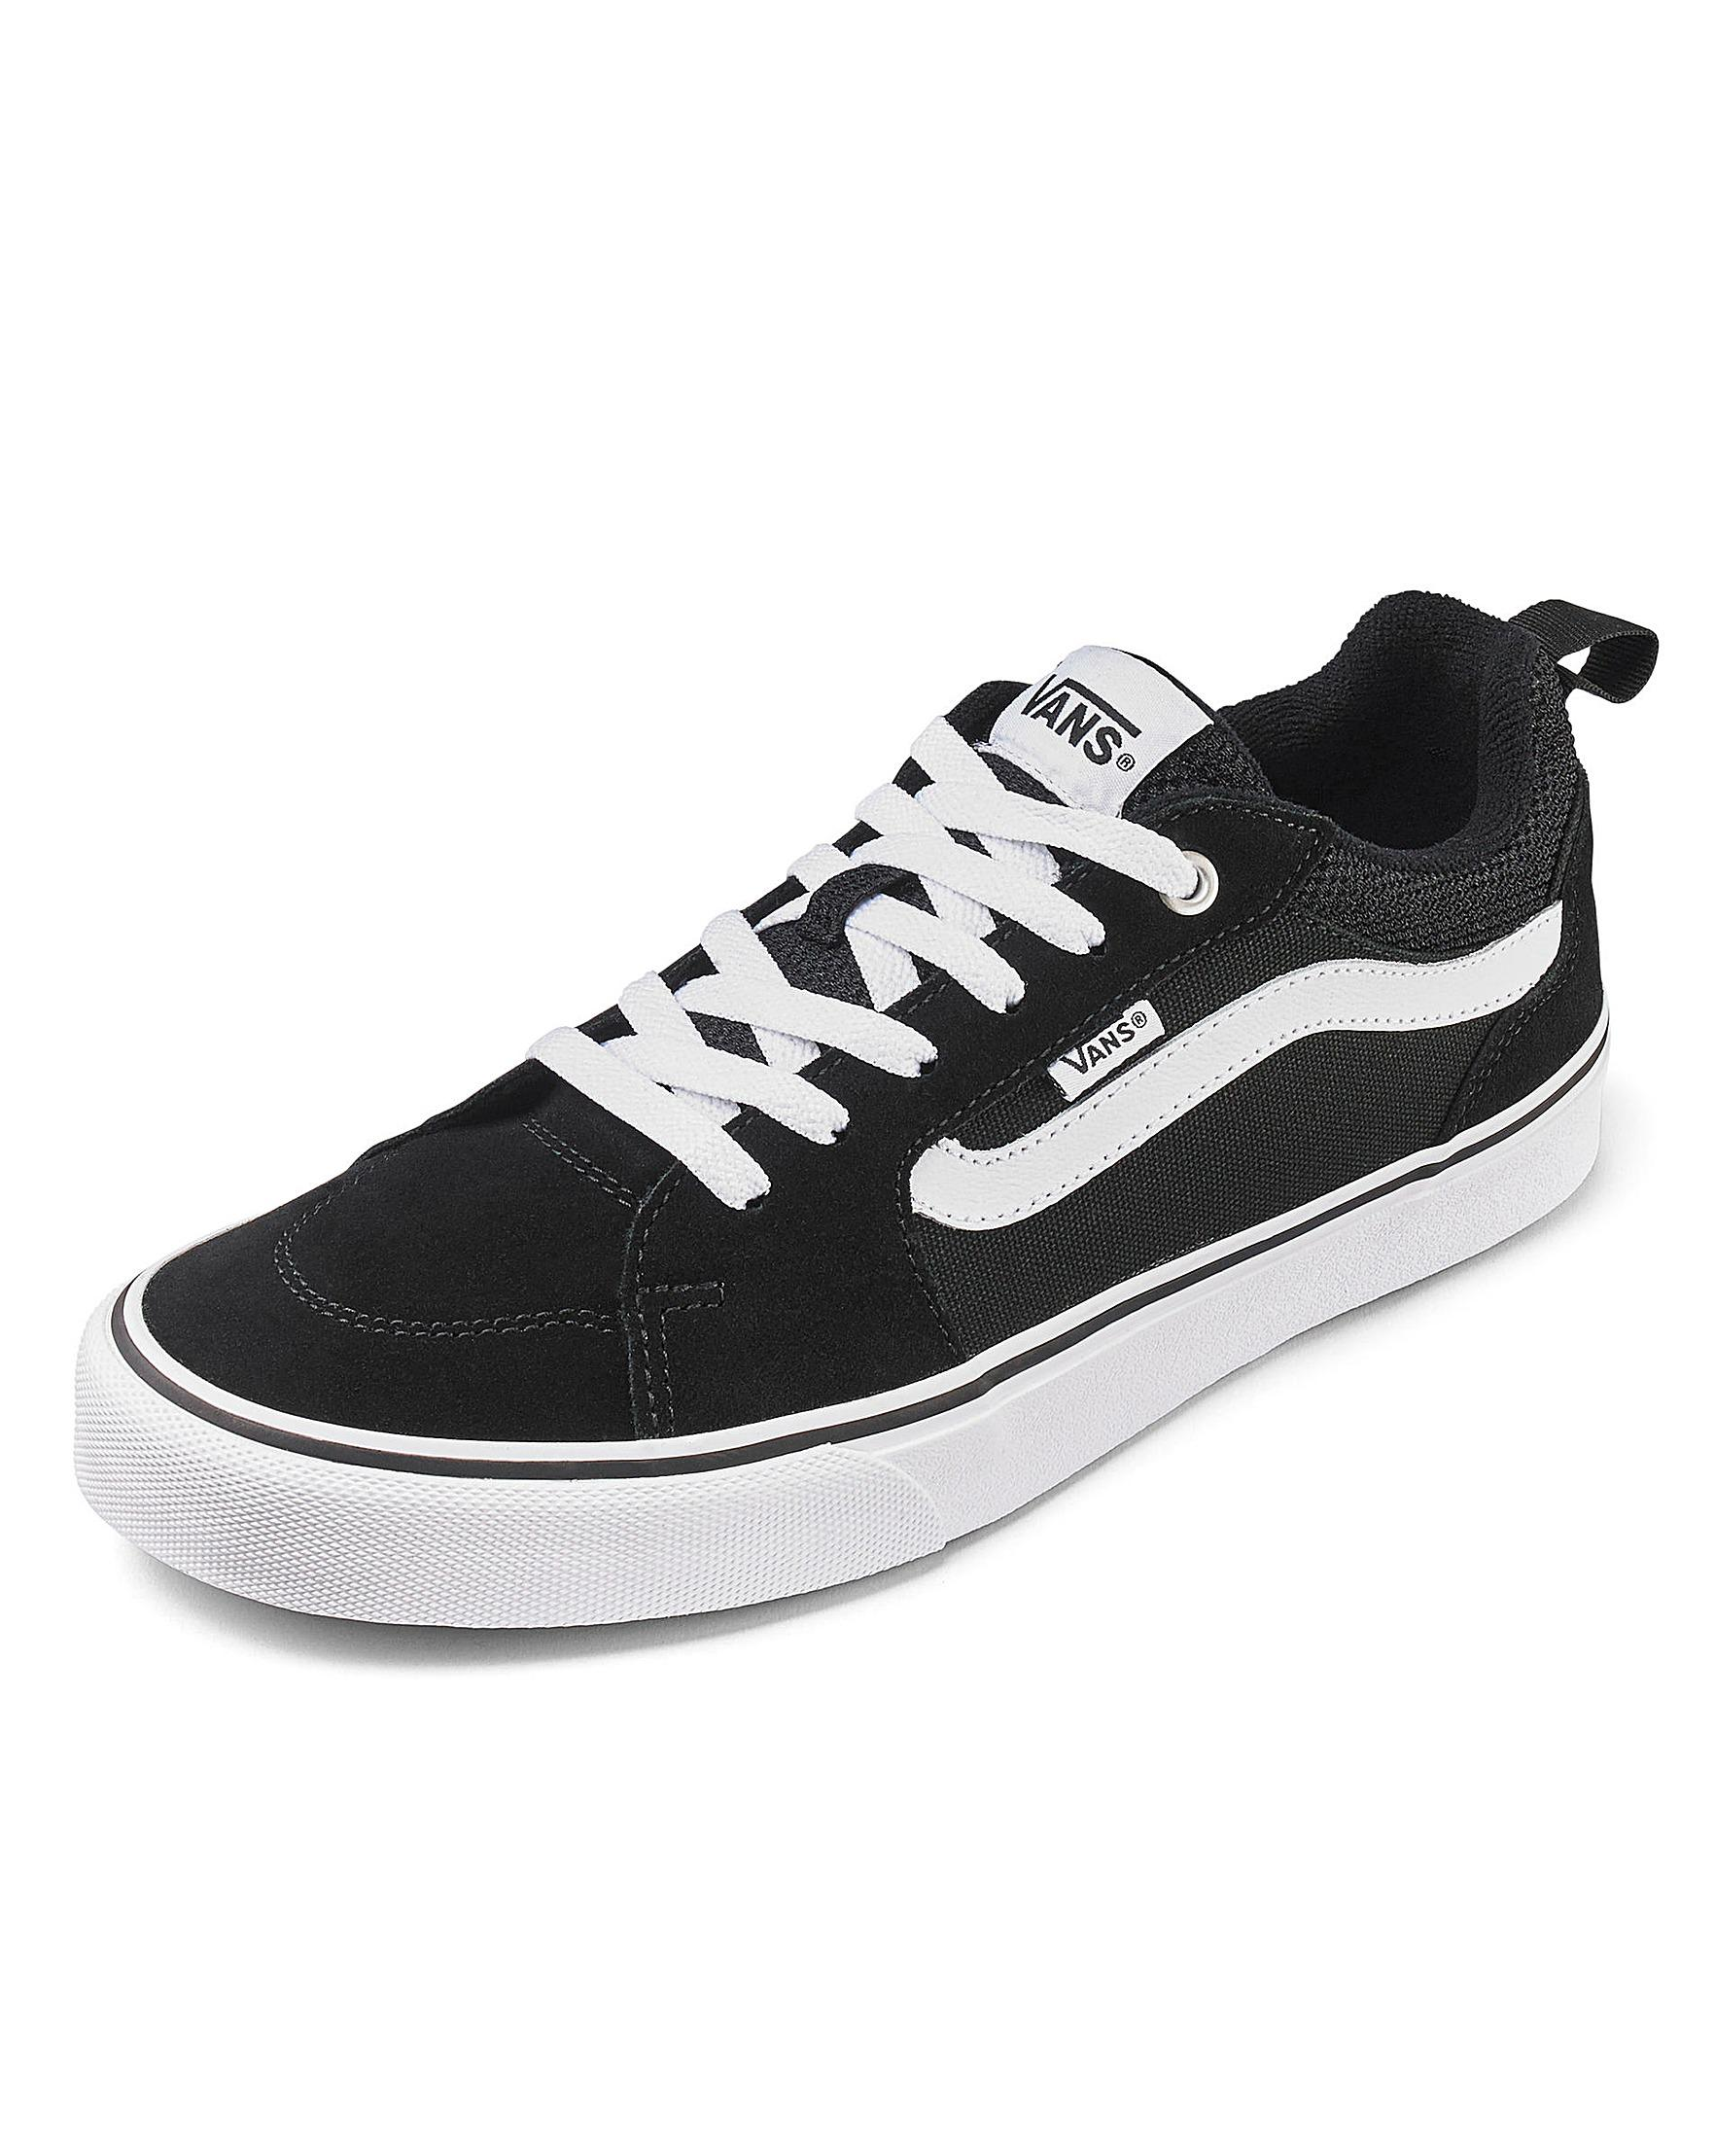 98f3f587ad Vans Filmore Stripe Trainers in Black for Men - Lyst